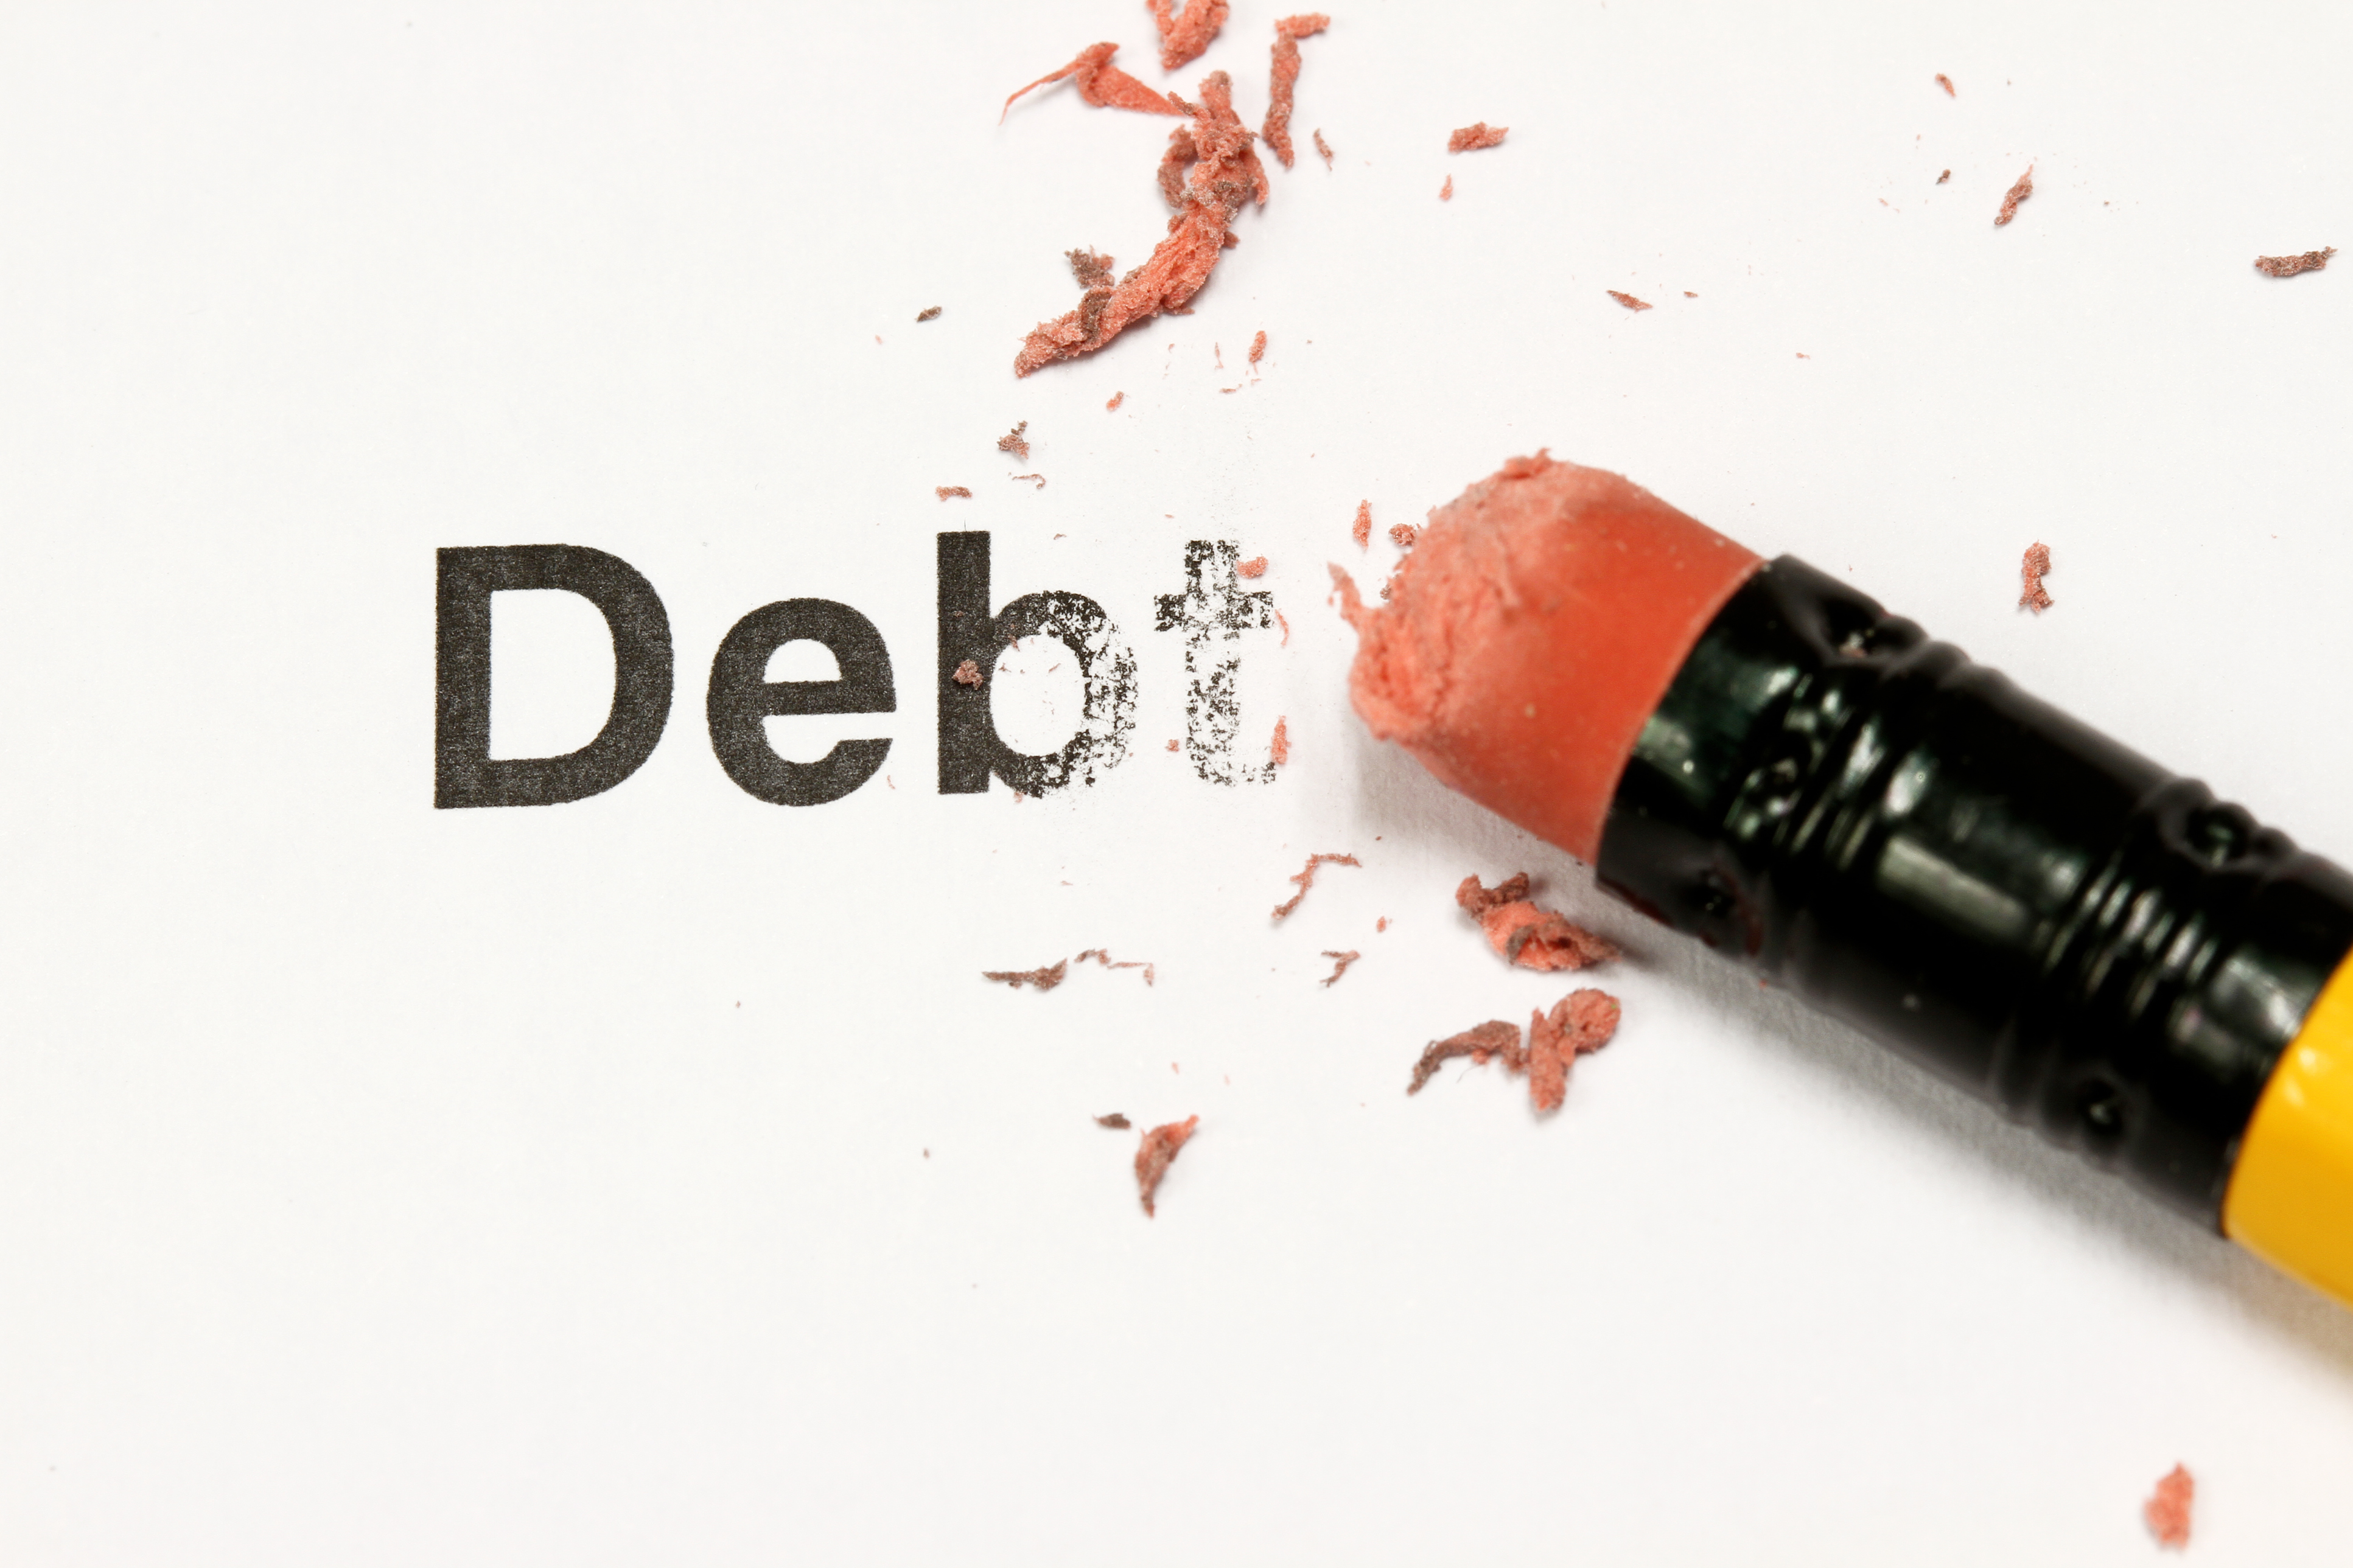 Robbing Peter: Change your debt mentality